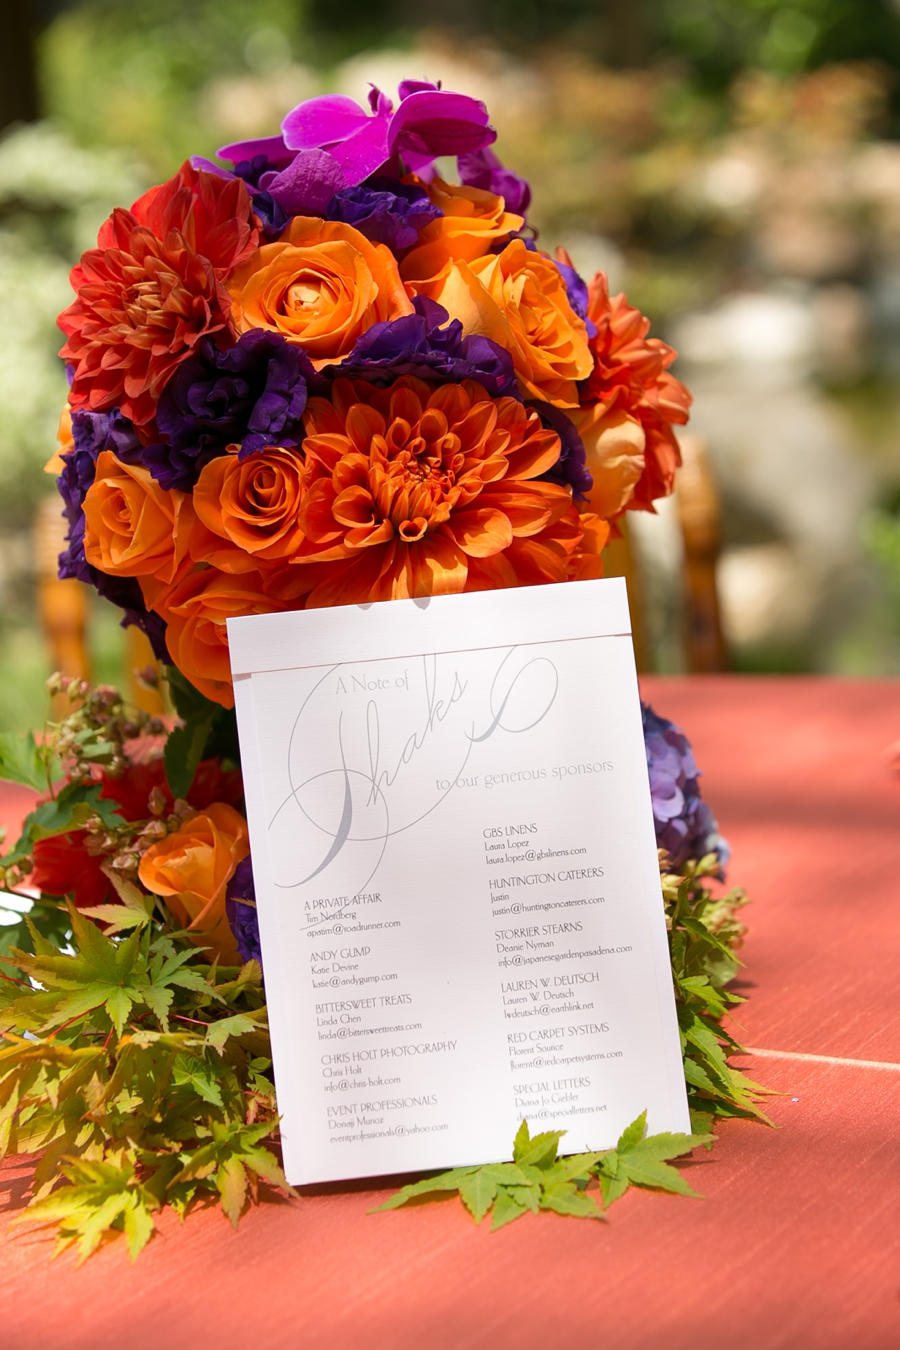 Storrier-Stearns Japanese Garden PASADENA WEDDING PHOTOGRAPHER CHRIS HOLT PHOTOGRAPHY_005.jpg